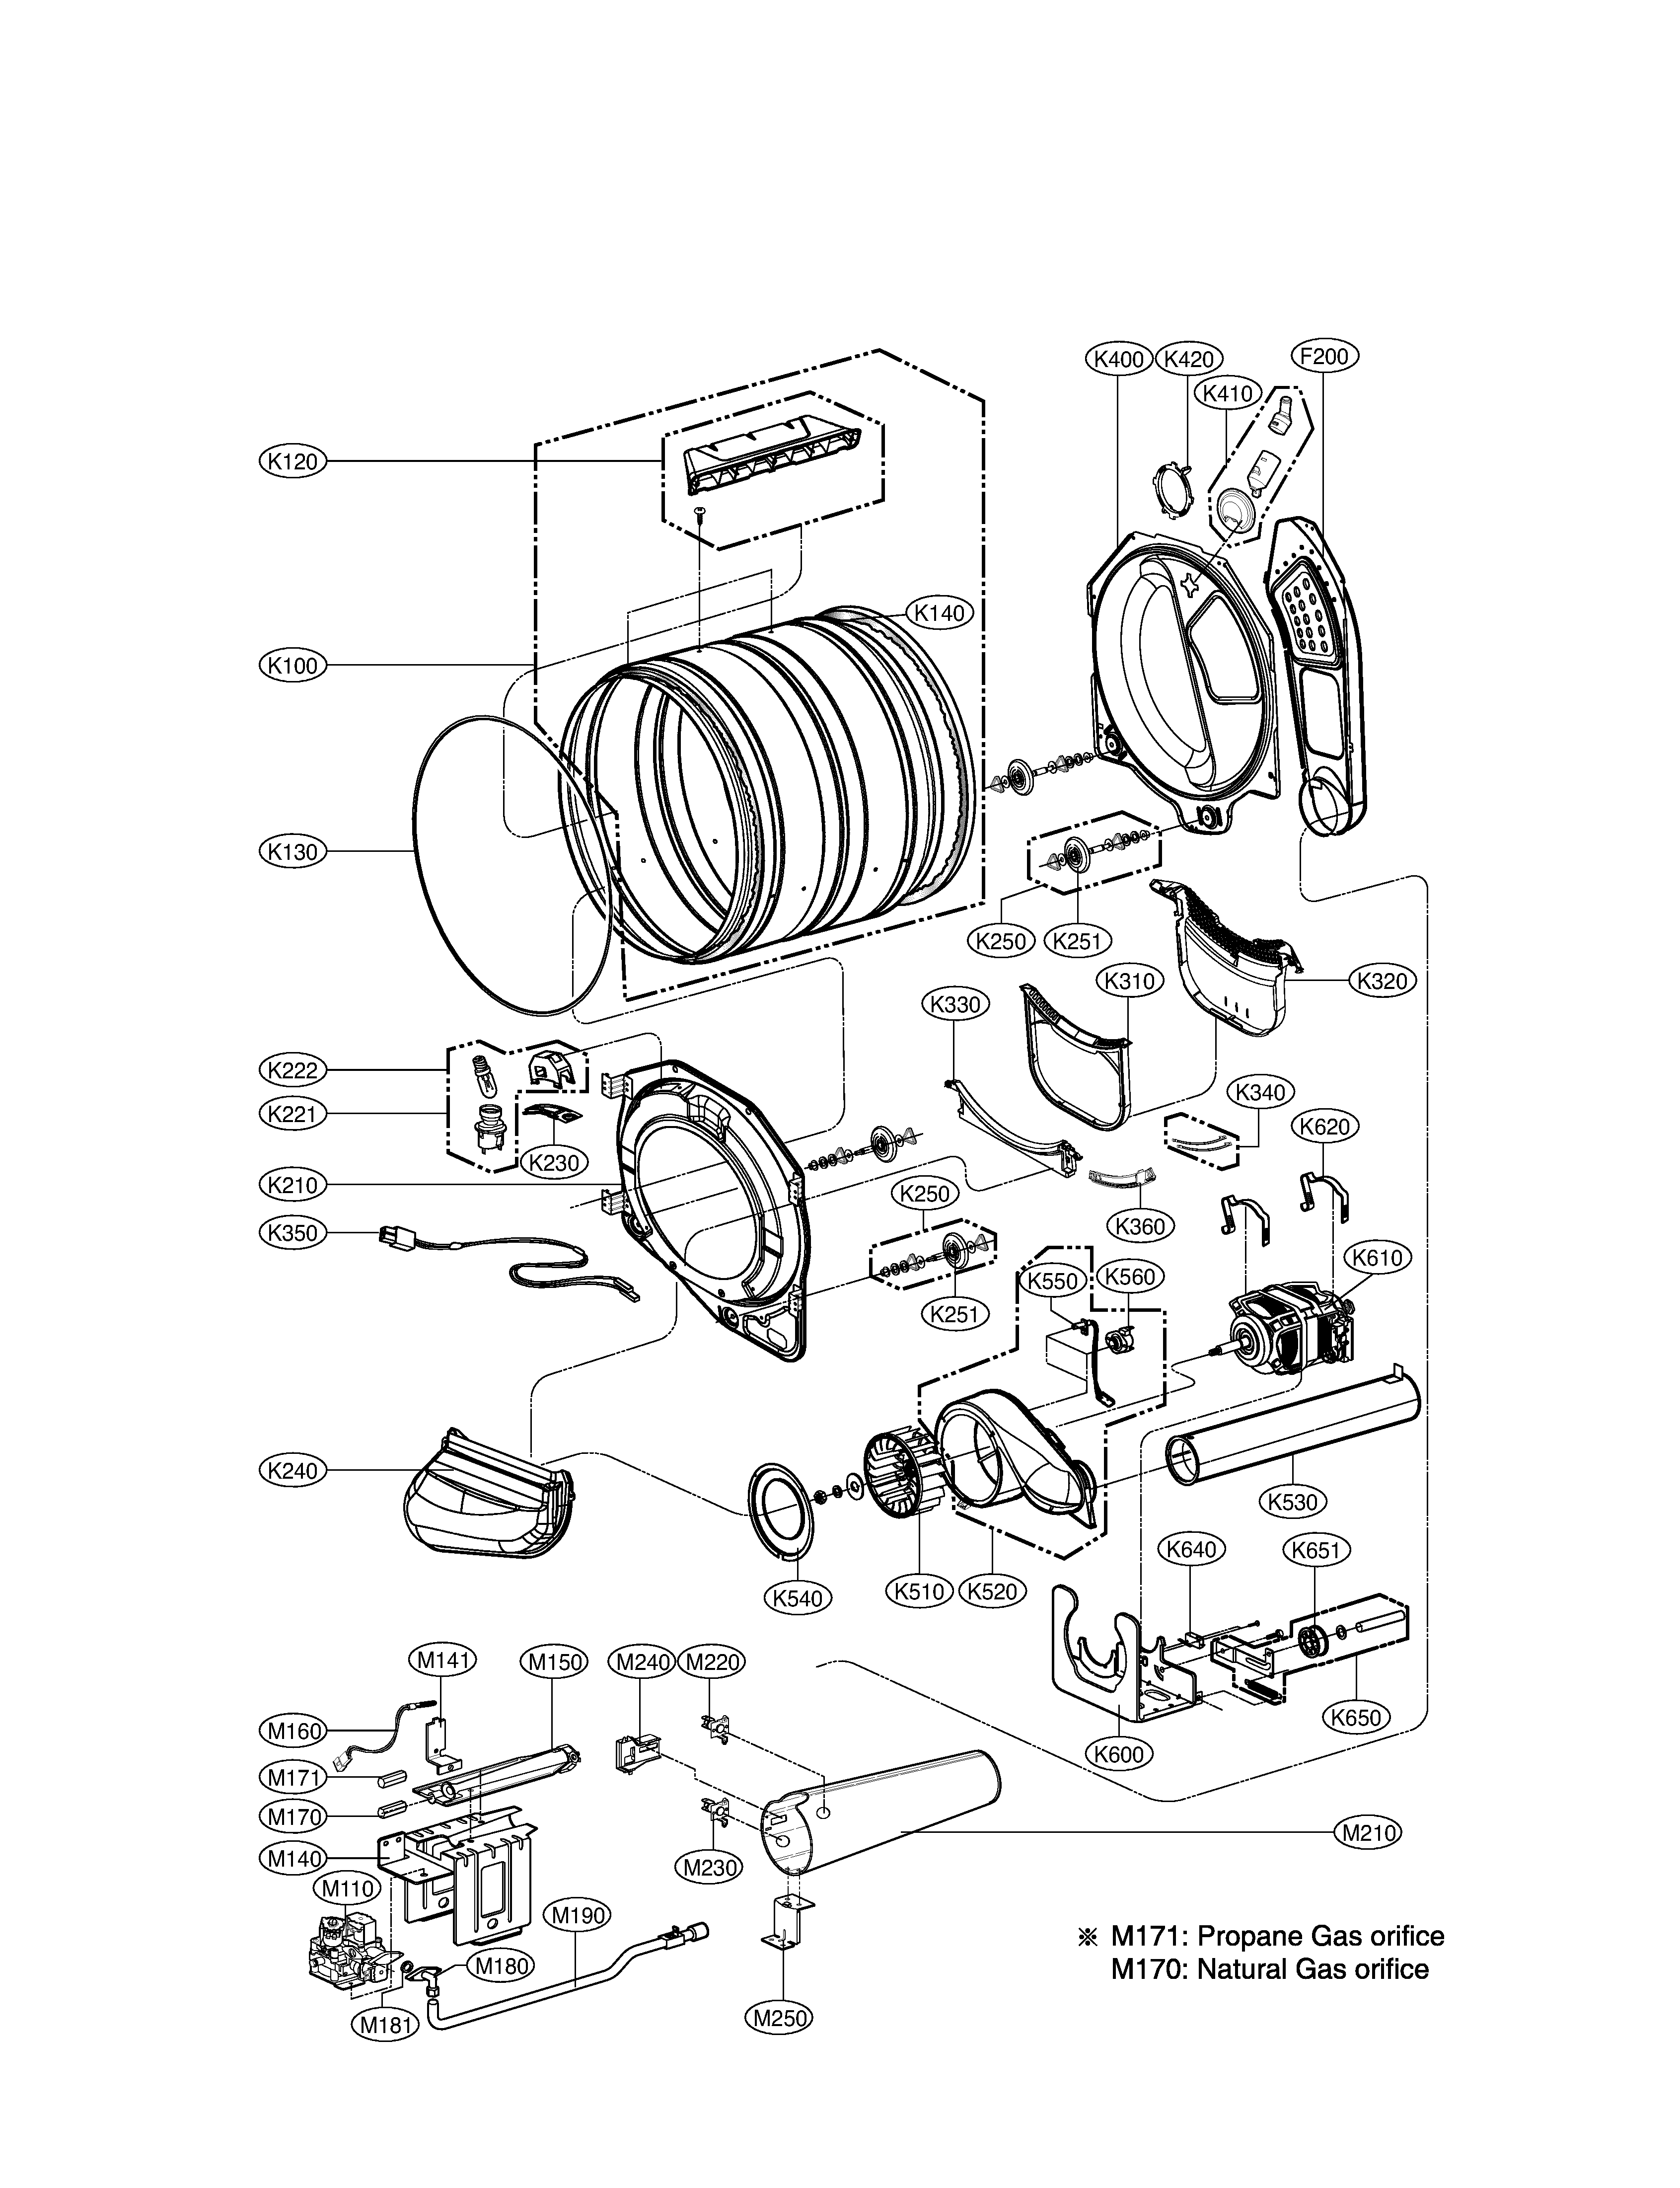 small resolution of drum motor diagram and parts list for lg dryer parts model diagram dishwasher parts diagram ge dryer parts diagram dometic